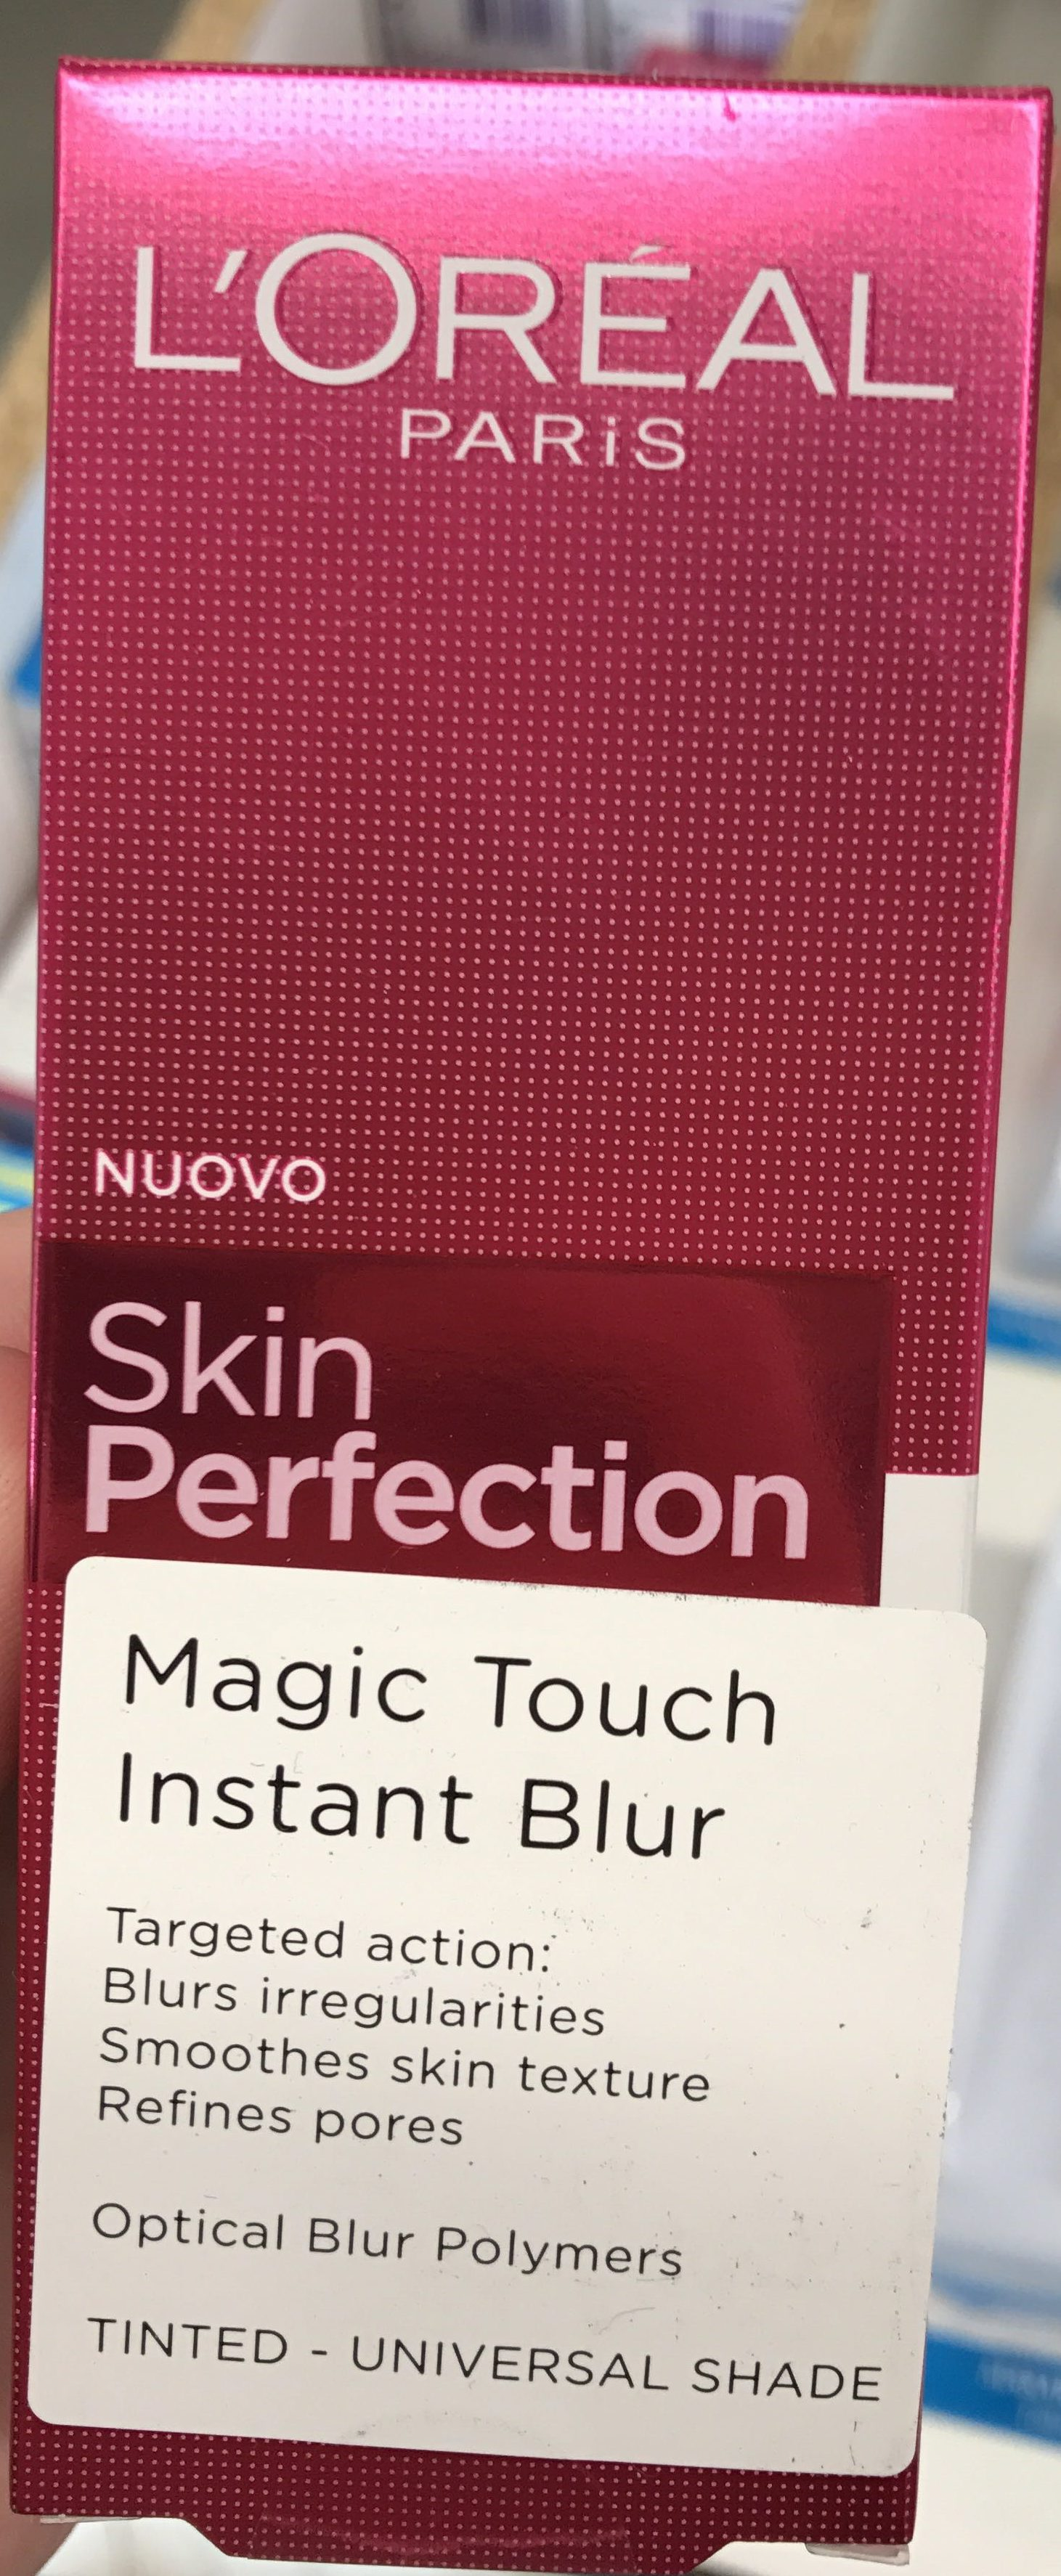 Skin Perfection Magic Touch Instant Blur (Tinted) - Produit